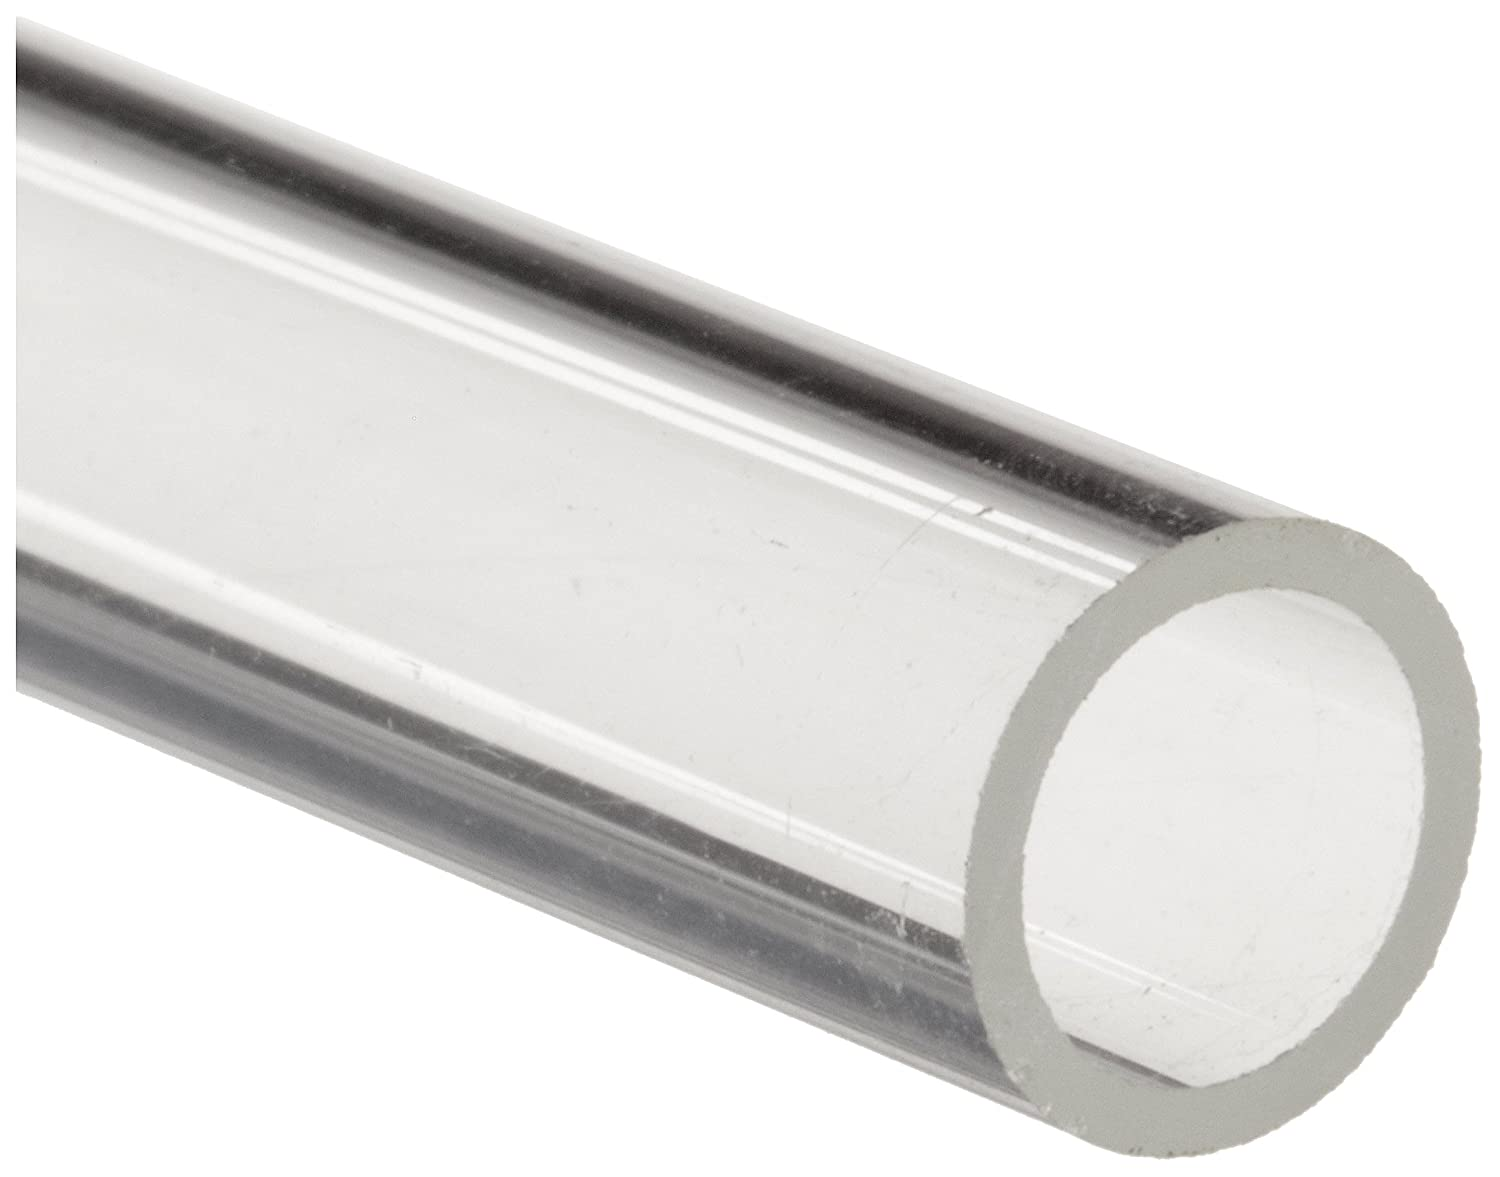 Clear Glass ASTM E 438  Tubing 1 mm Wall 4 mm ID Pack of 10 12 inches Length 6 mm OD